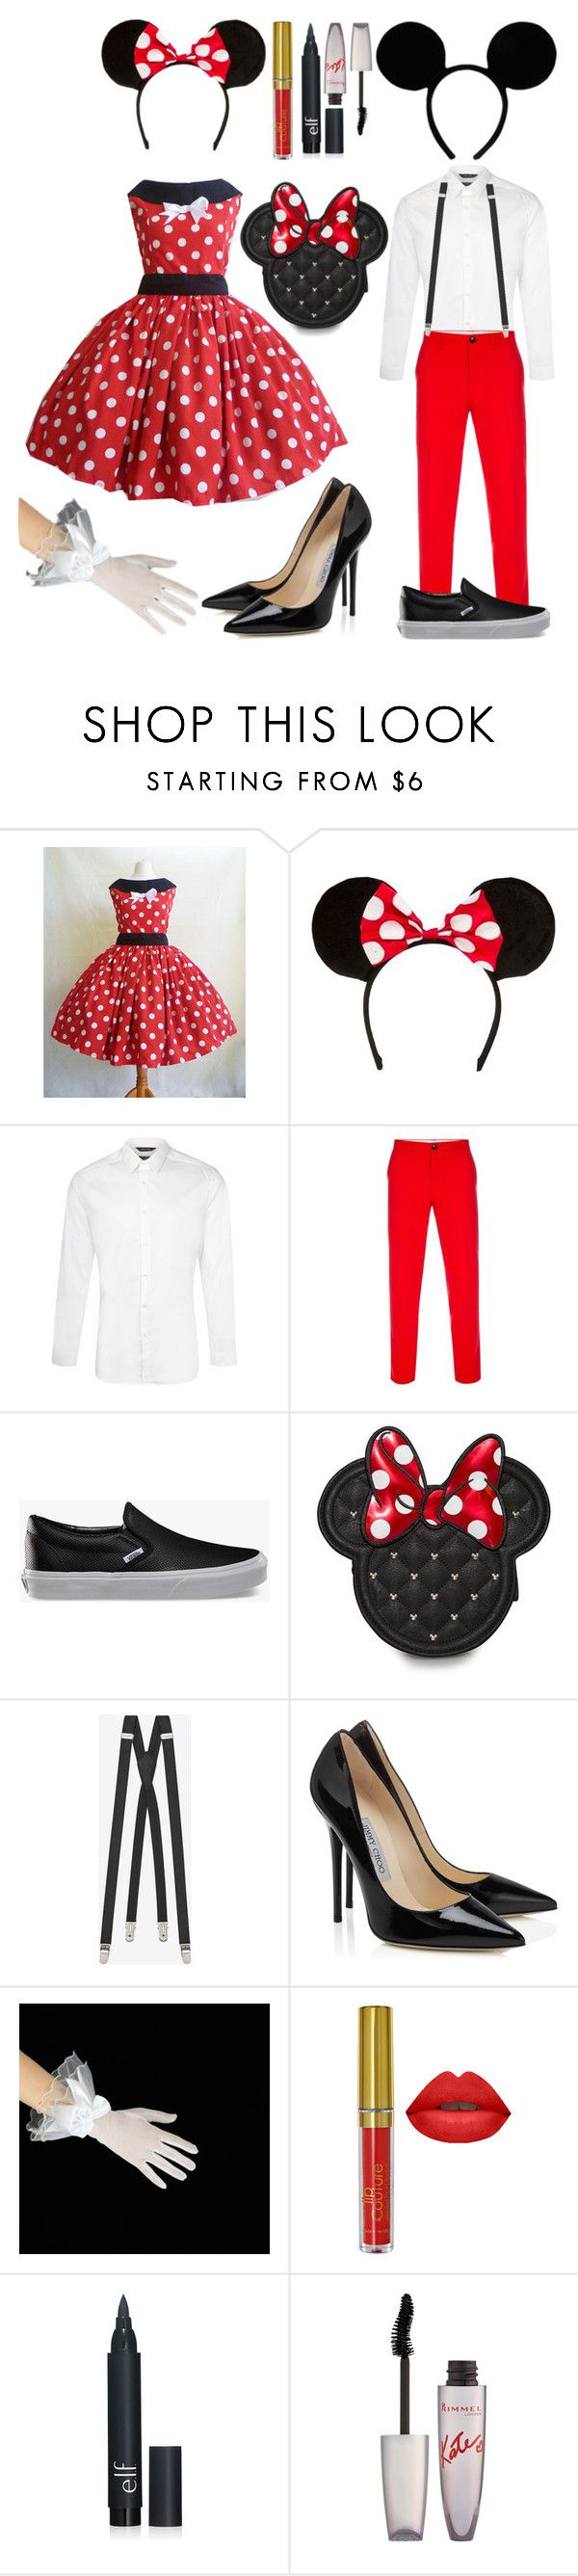 """Halloween Costumes: Mickey and Minnie Mouse"" by the-wanted-potato ❤ liked on Polyvore featuring Paul Smith, Vans, Yves Saint Laurent, Rimmel, women's clothing, women's fashion, women, female, woman and misses"